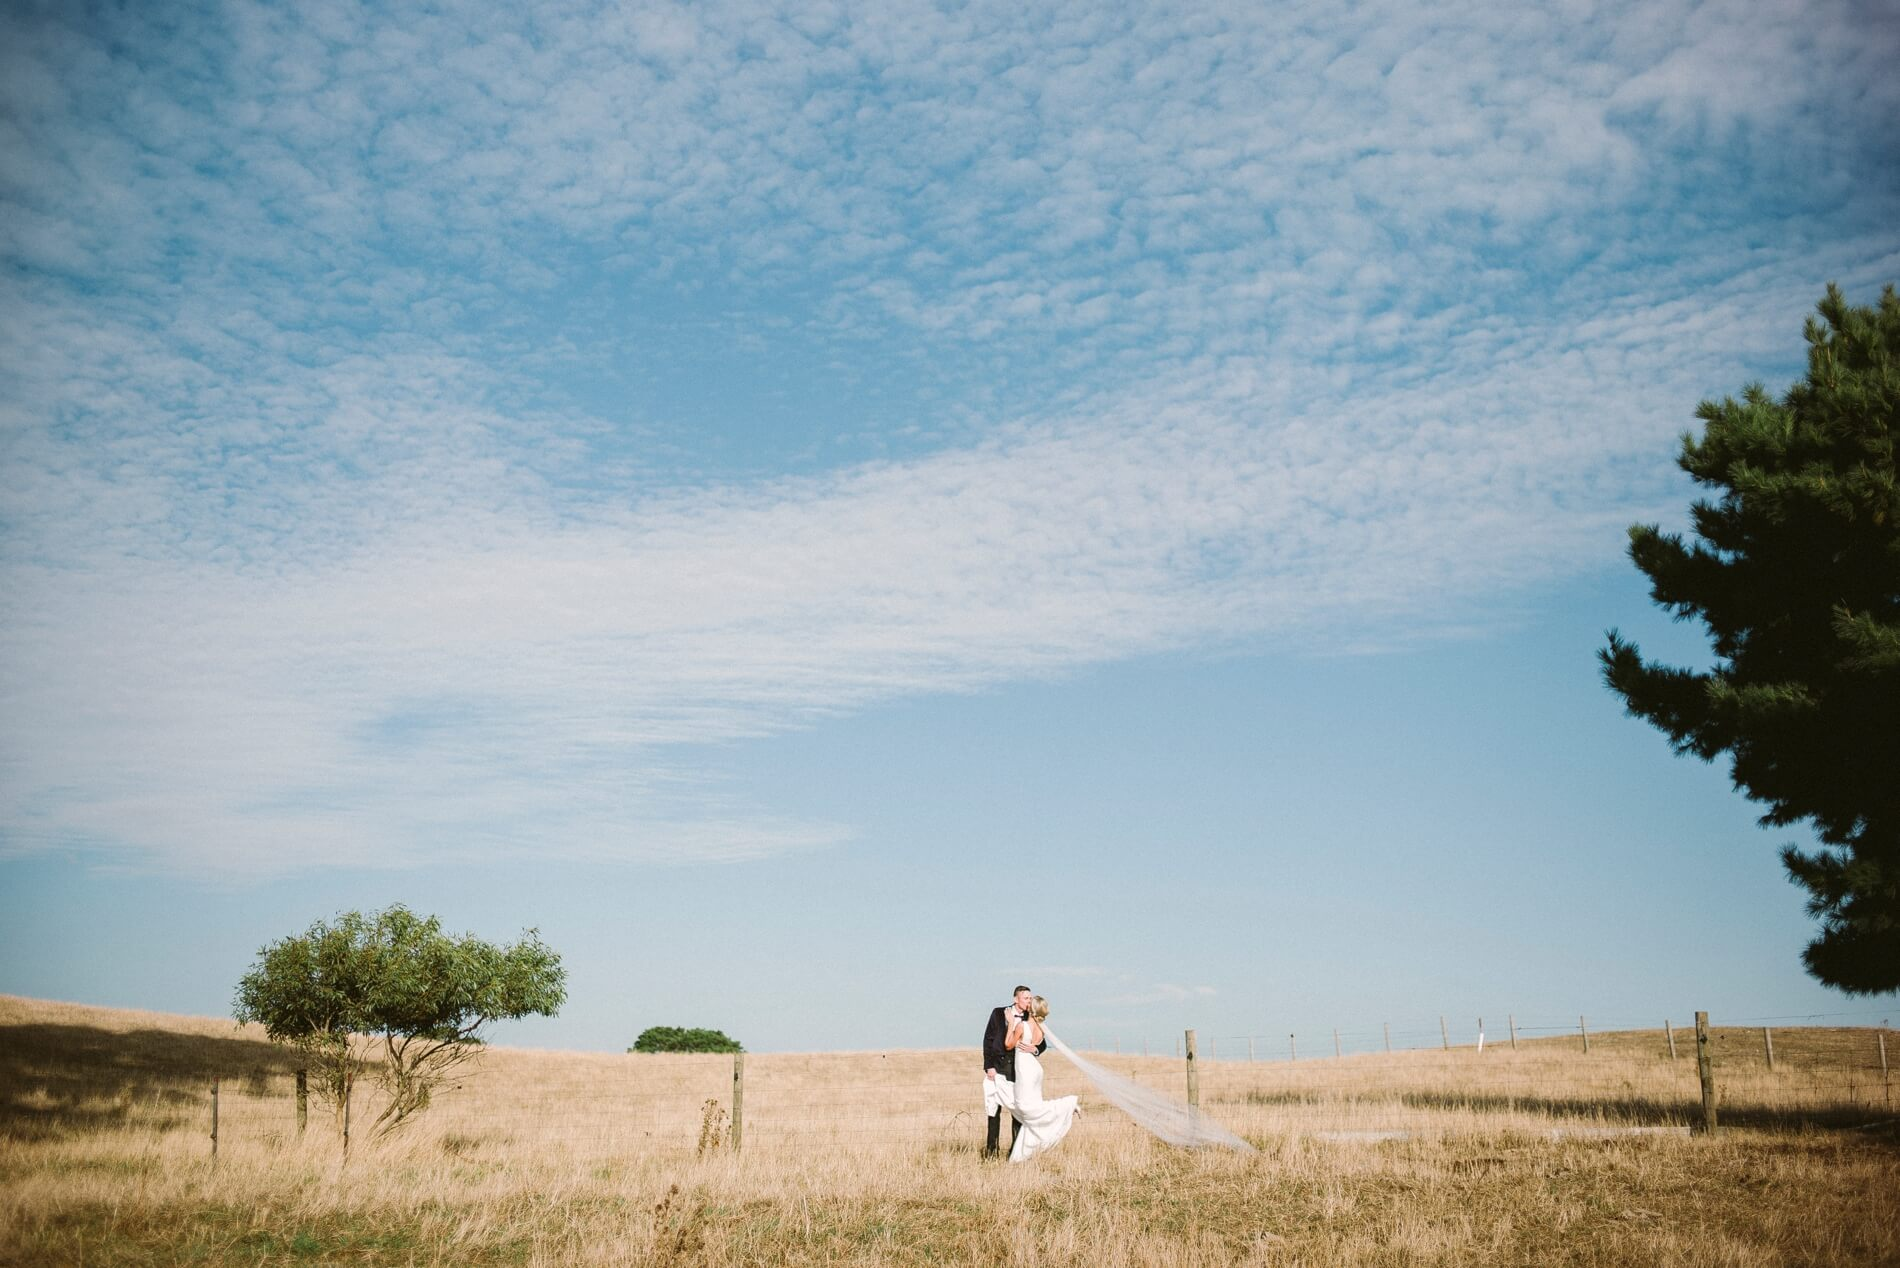 inverloch-wedding-photography-kyle-larson